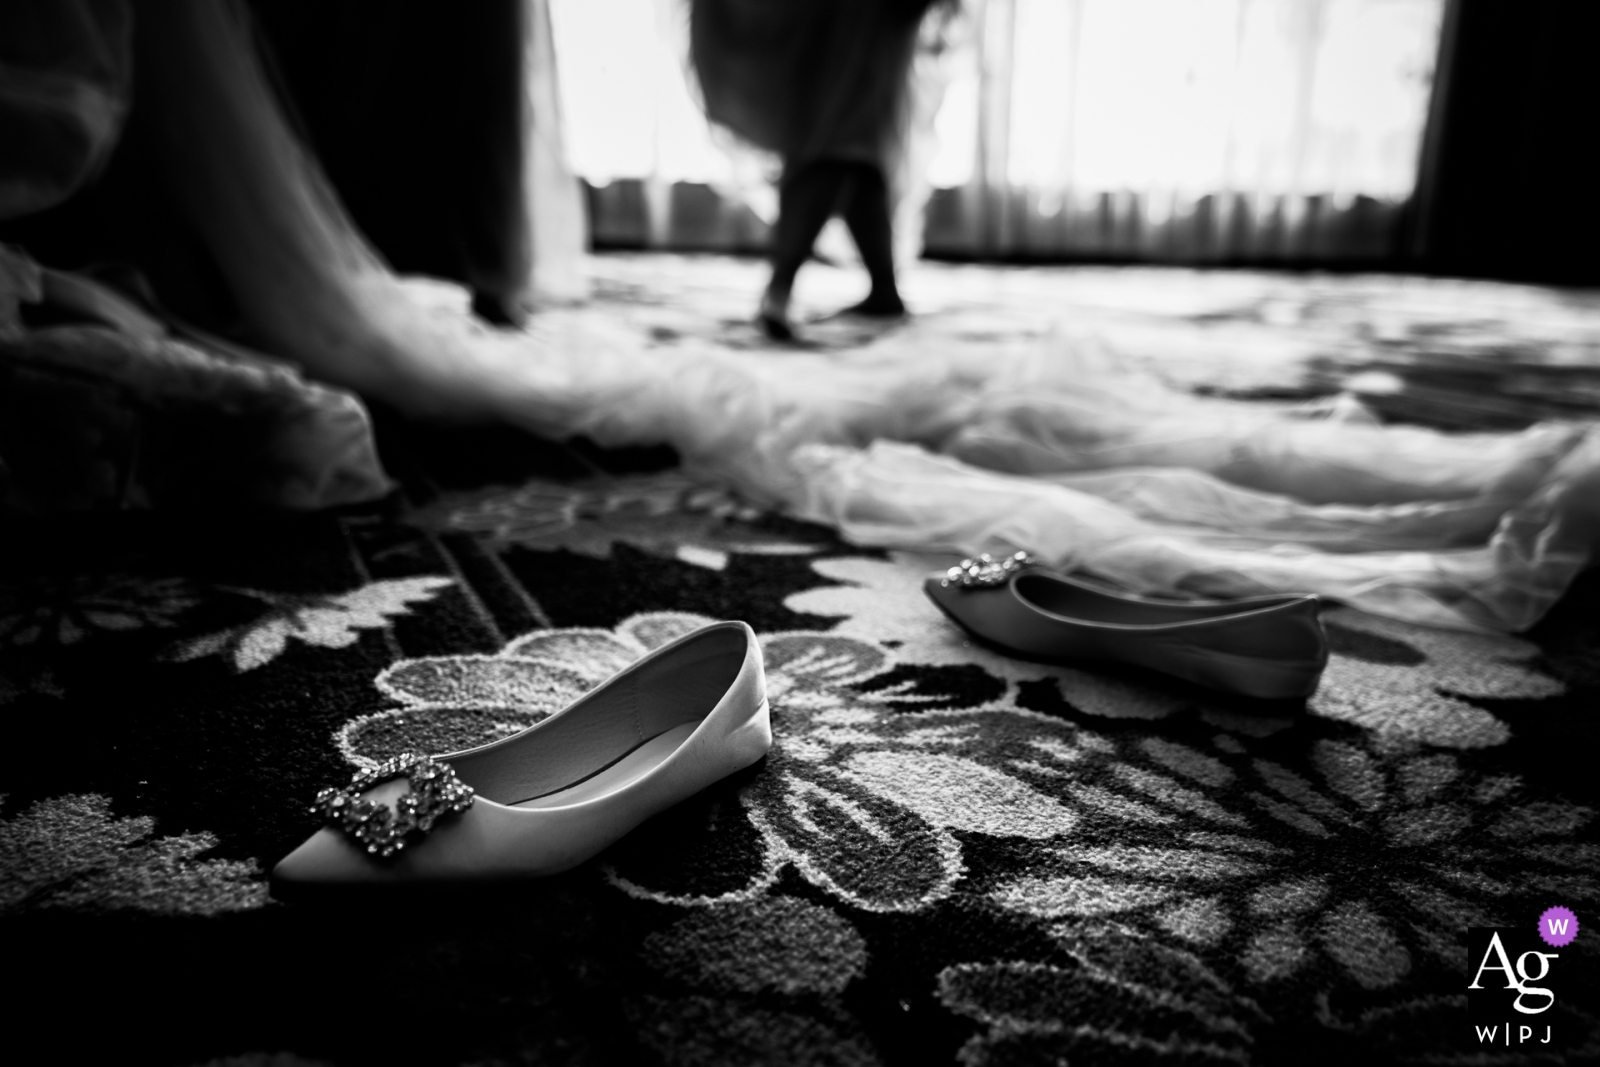 China wedding photography | The shoes of the bride on the hotel carpet with the dress - getting ready for the wedding ceremony